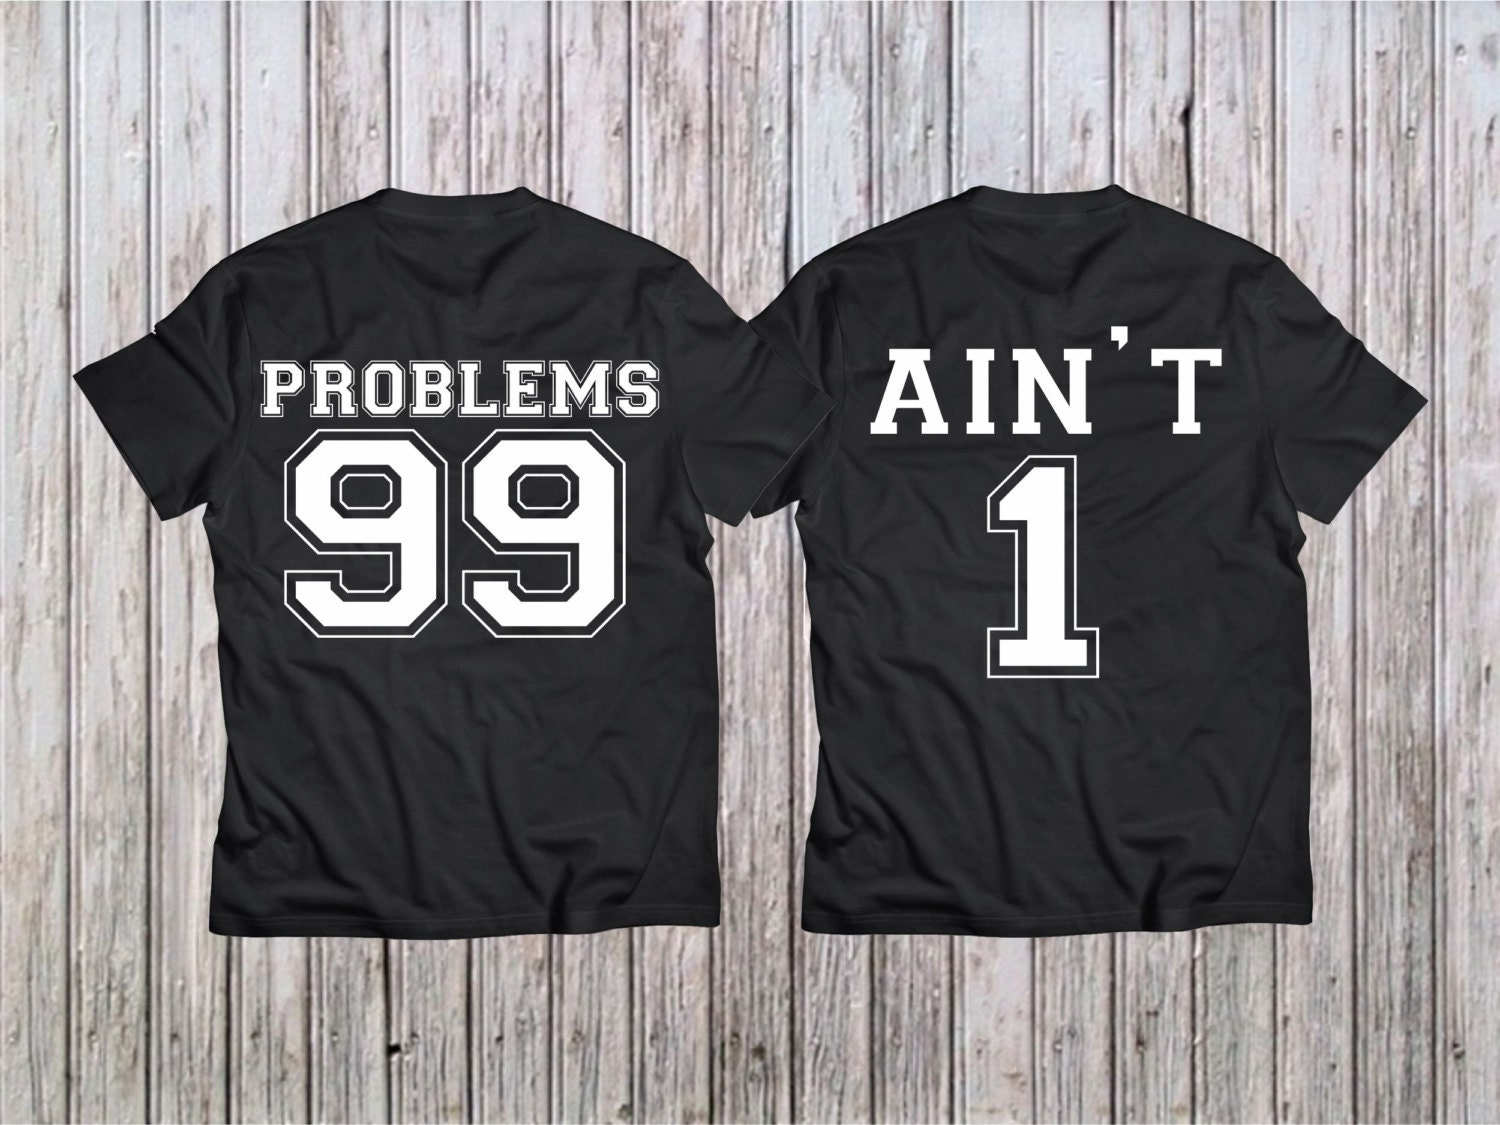 606c7bdcb3 99 Problems Ain't 1 Shirts Couples Shirts T Shirt T-Shirt | Etsy